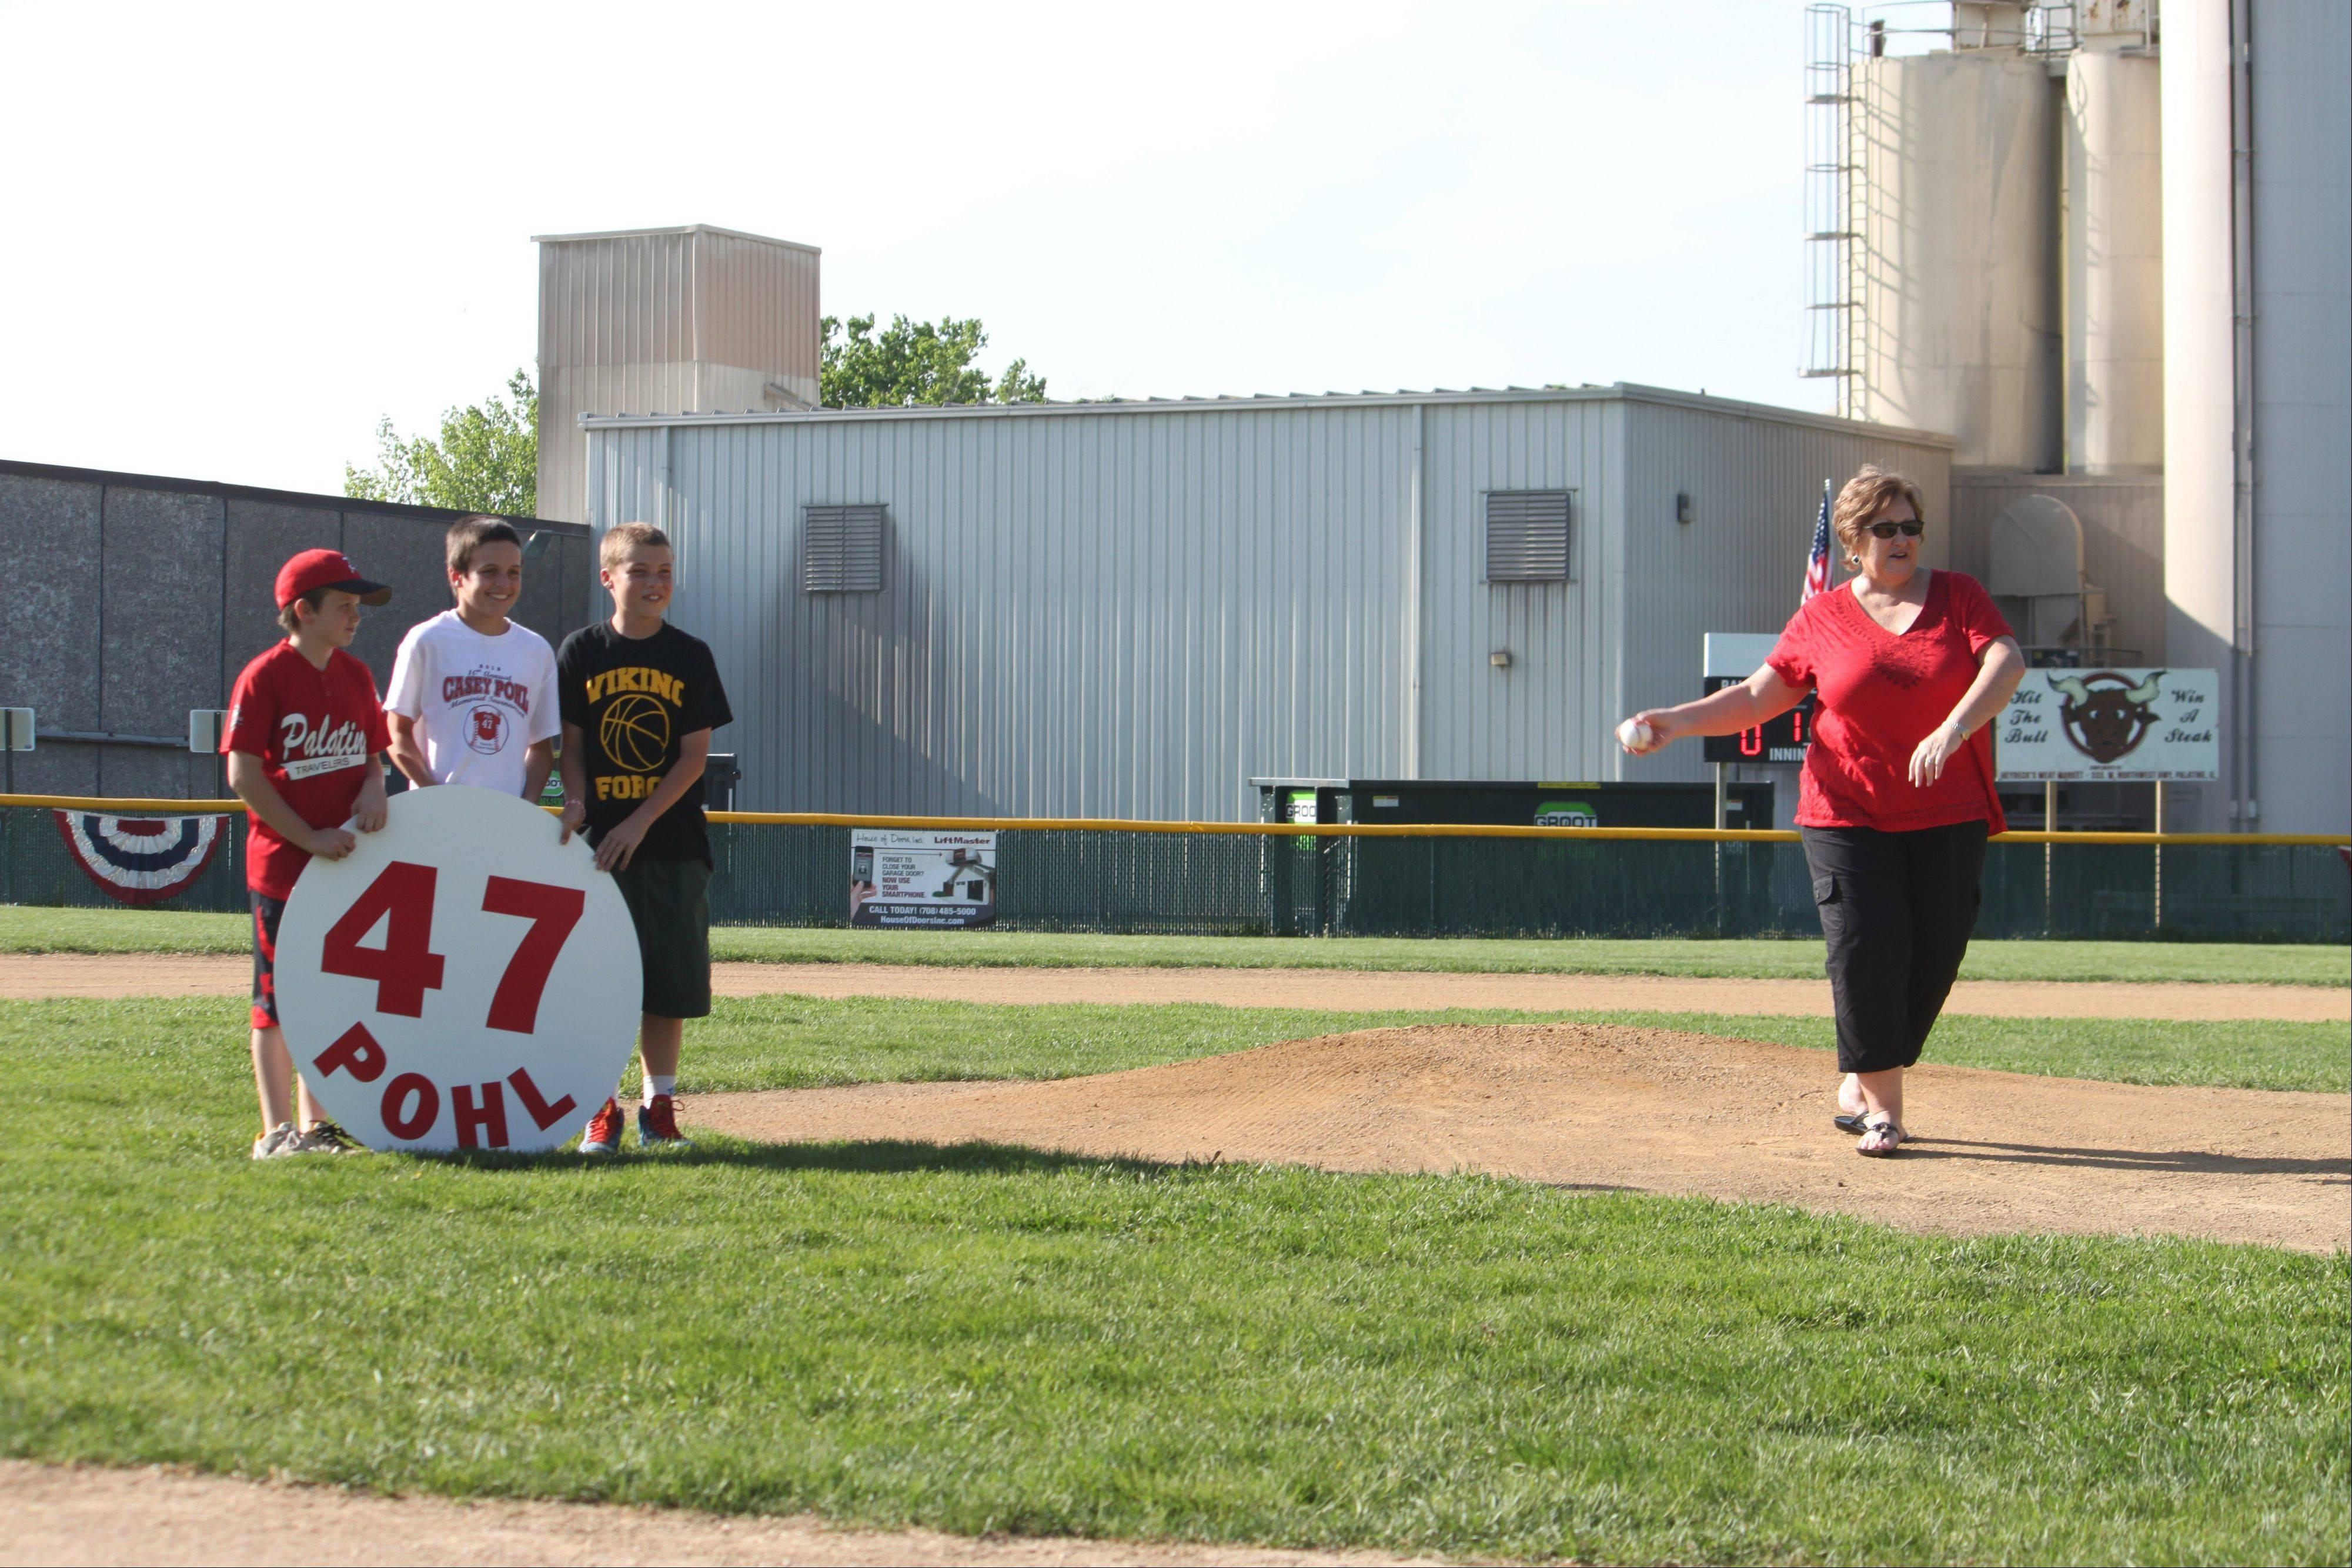 Debbie Pohl throws out the first pitch on Thursday at the Casey Pohl Memorial Tournament in Palatine.